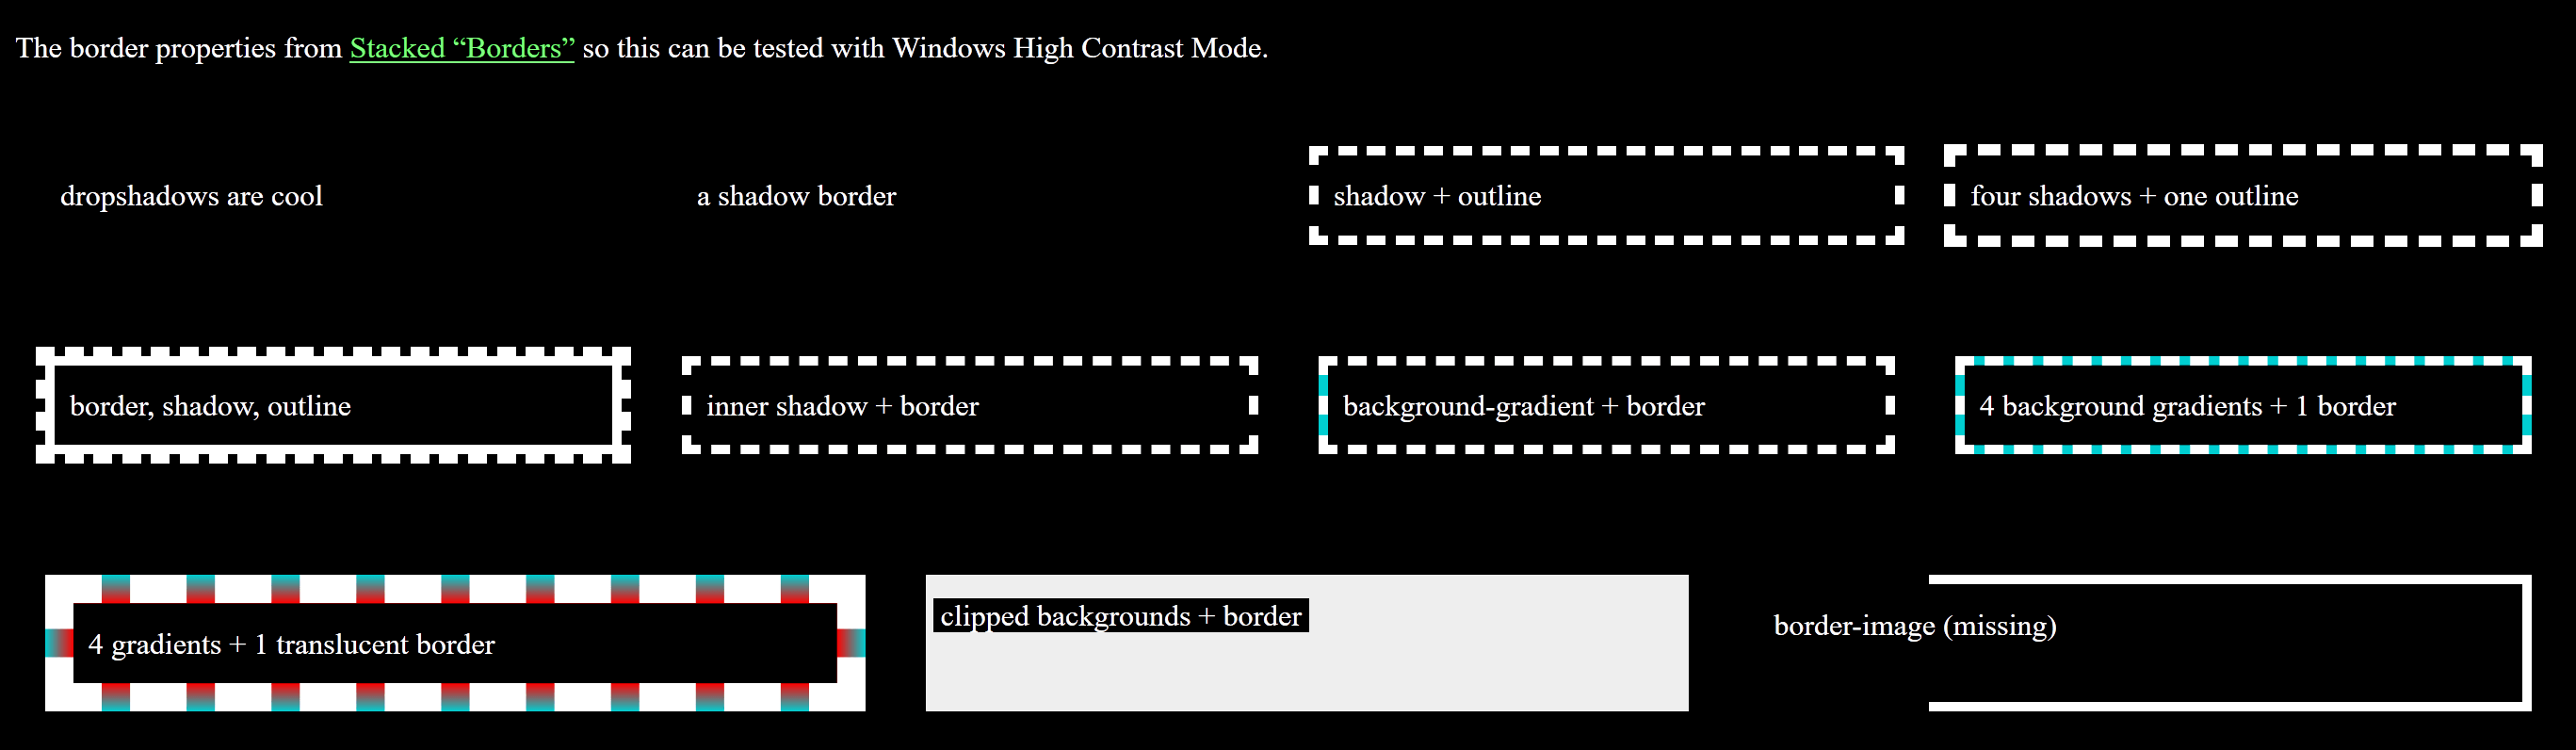 Screen shot from Edge running Windows High Contrast Mode.